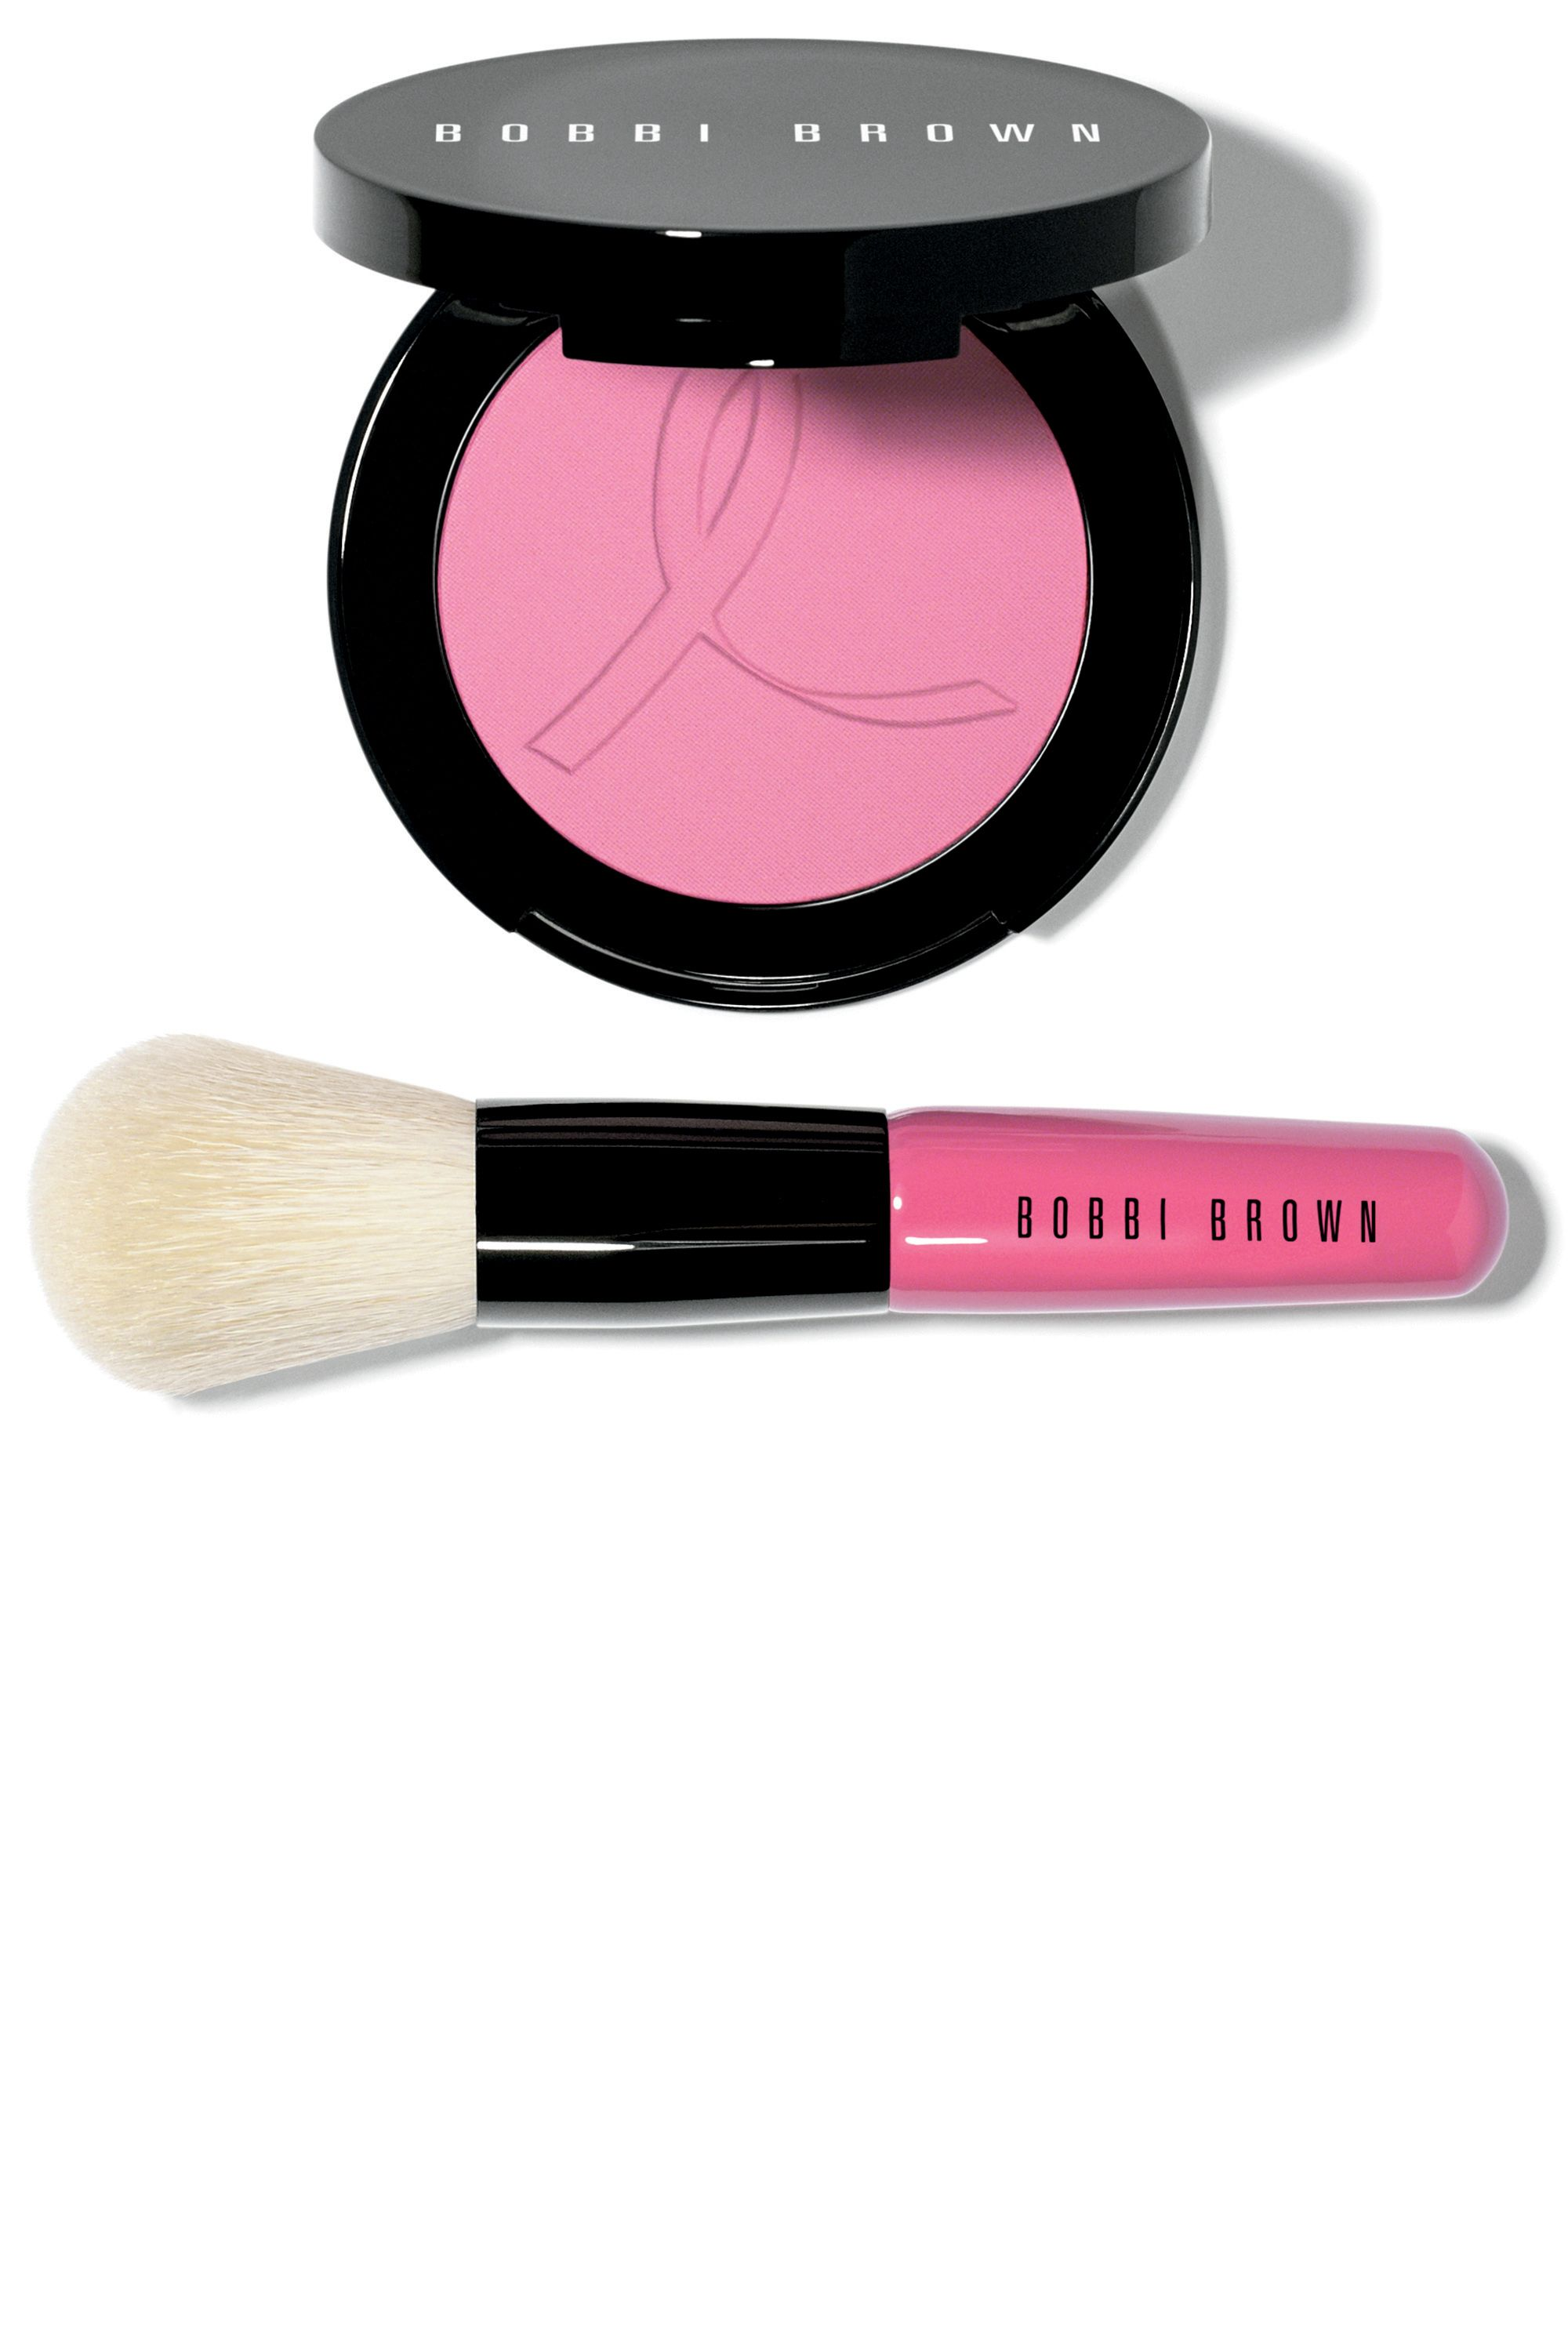 "<p>$12 of every sale of this cheery, cotton candy pink blush will go to the Breast Cancer Research Foundation (BCRF).</p><p><strong>Bobbi Brown </strong>Breast Cancer Awareness Peony Set, $50, <a href=""http://www.bobbibrowncosmetics.com/product/14460/37693/New/Peony-Set/FH15"" target=""_blank"">bobbibrowncosmetics.com</a>.</p>"